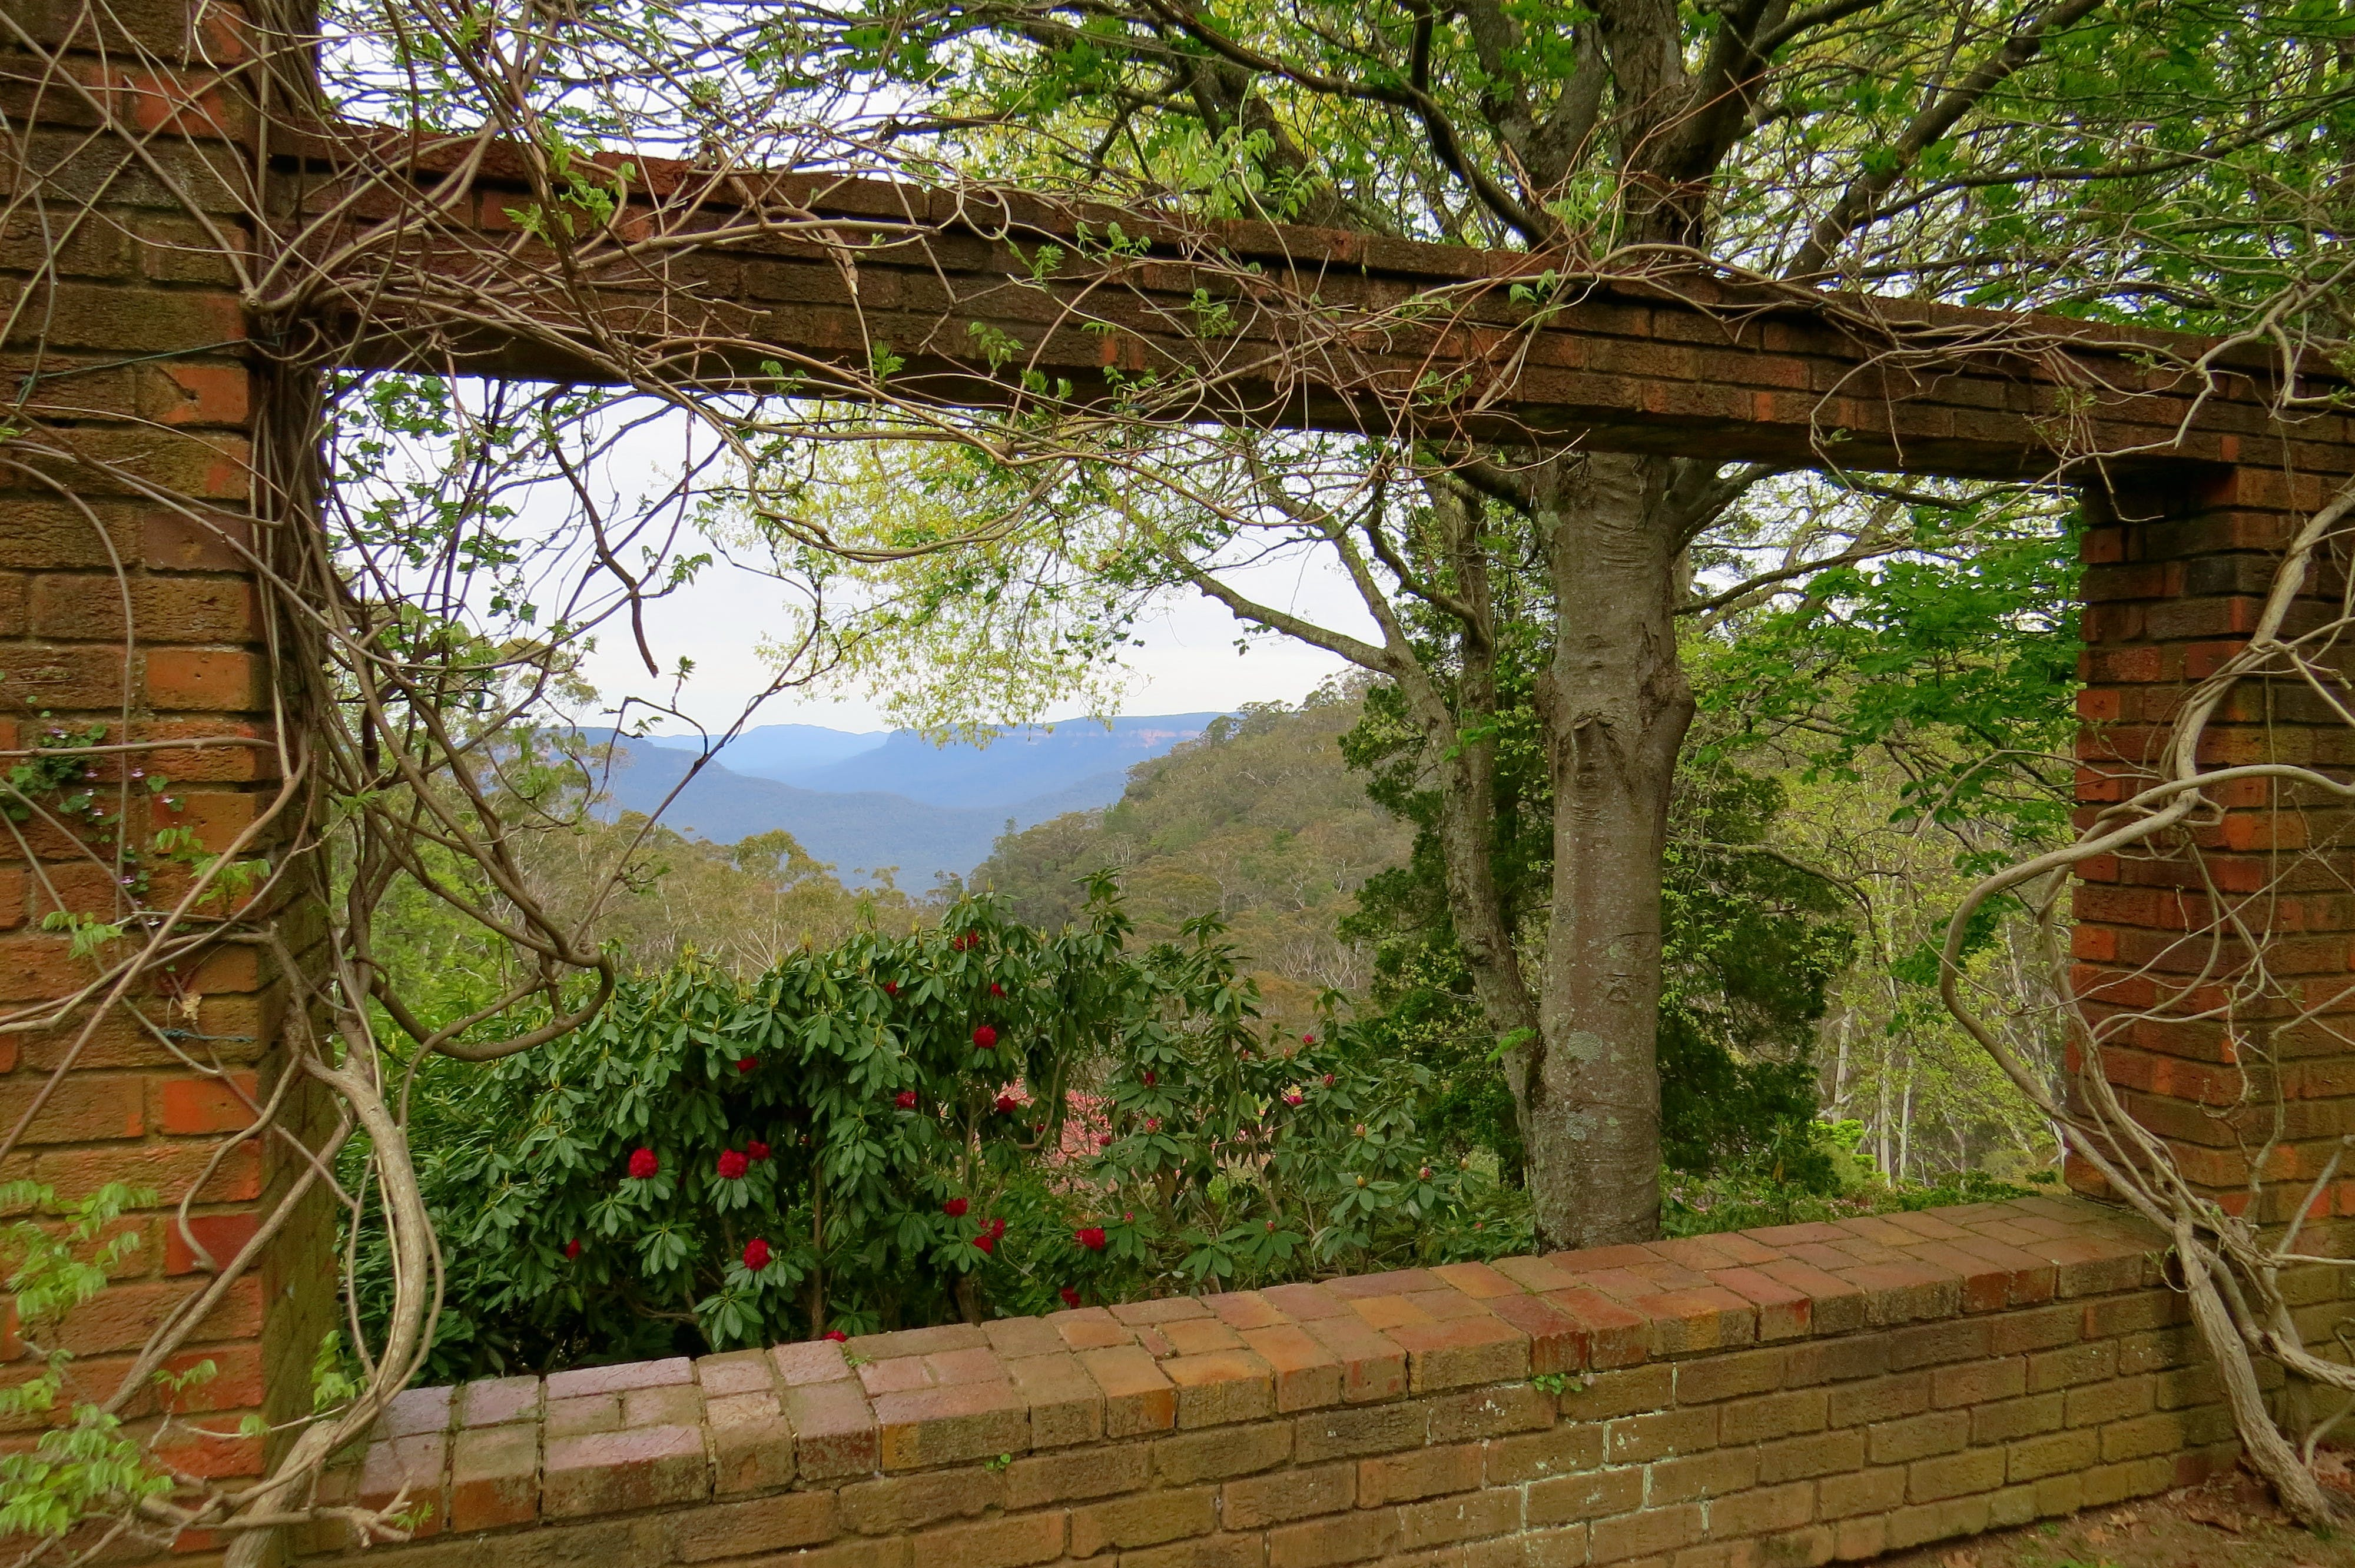 This picture is taken at Everglades Gardens, Leura. While the view is stunning, it is hardly unique. Wherever you live in the Blue Mountains, soul-restoring vistas are only moments away. That's what I love about the Blue Mountains. (Continued)